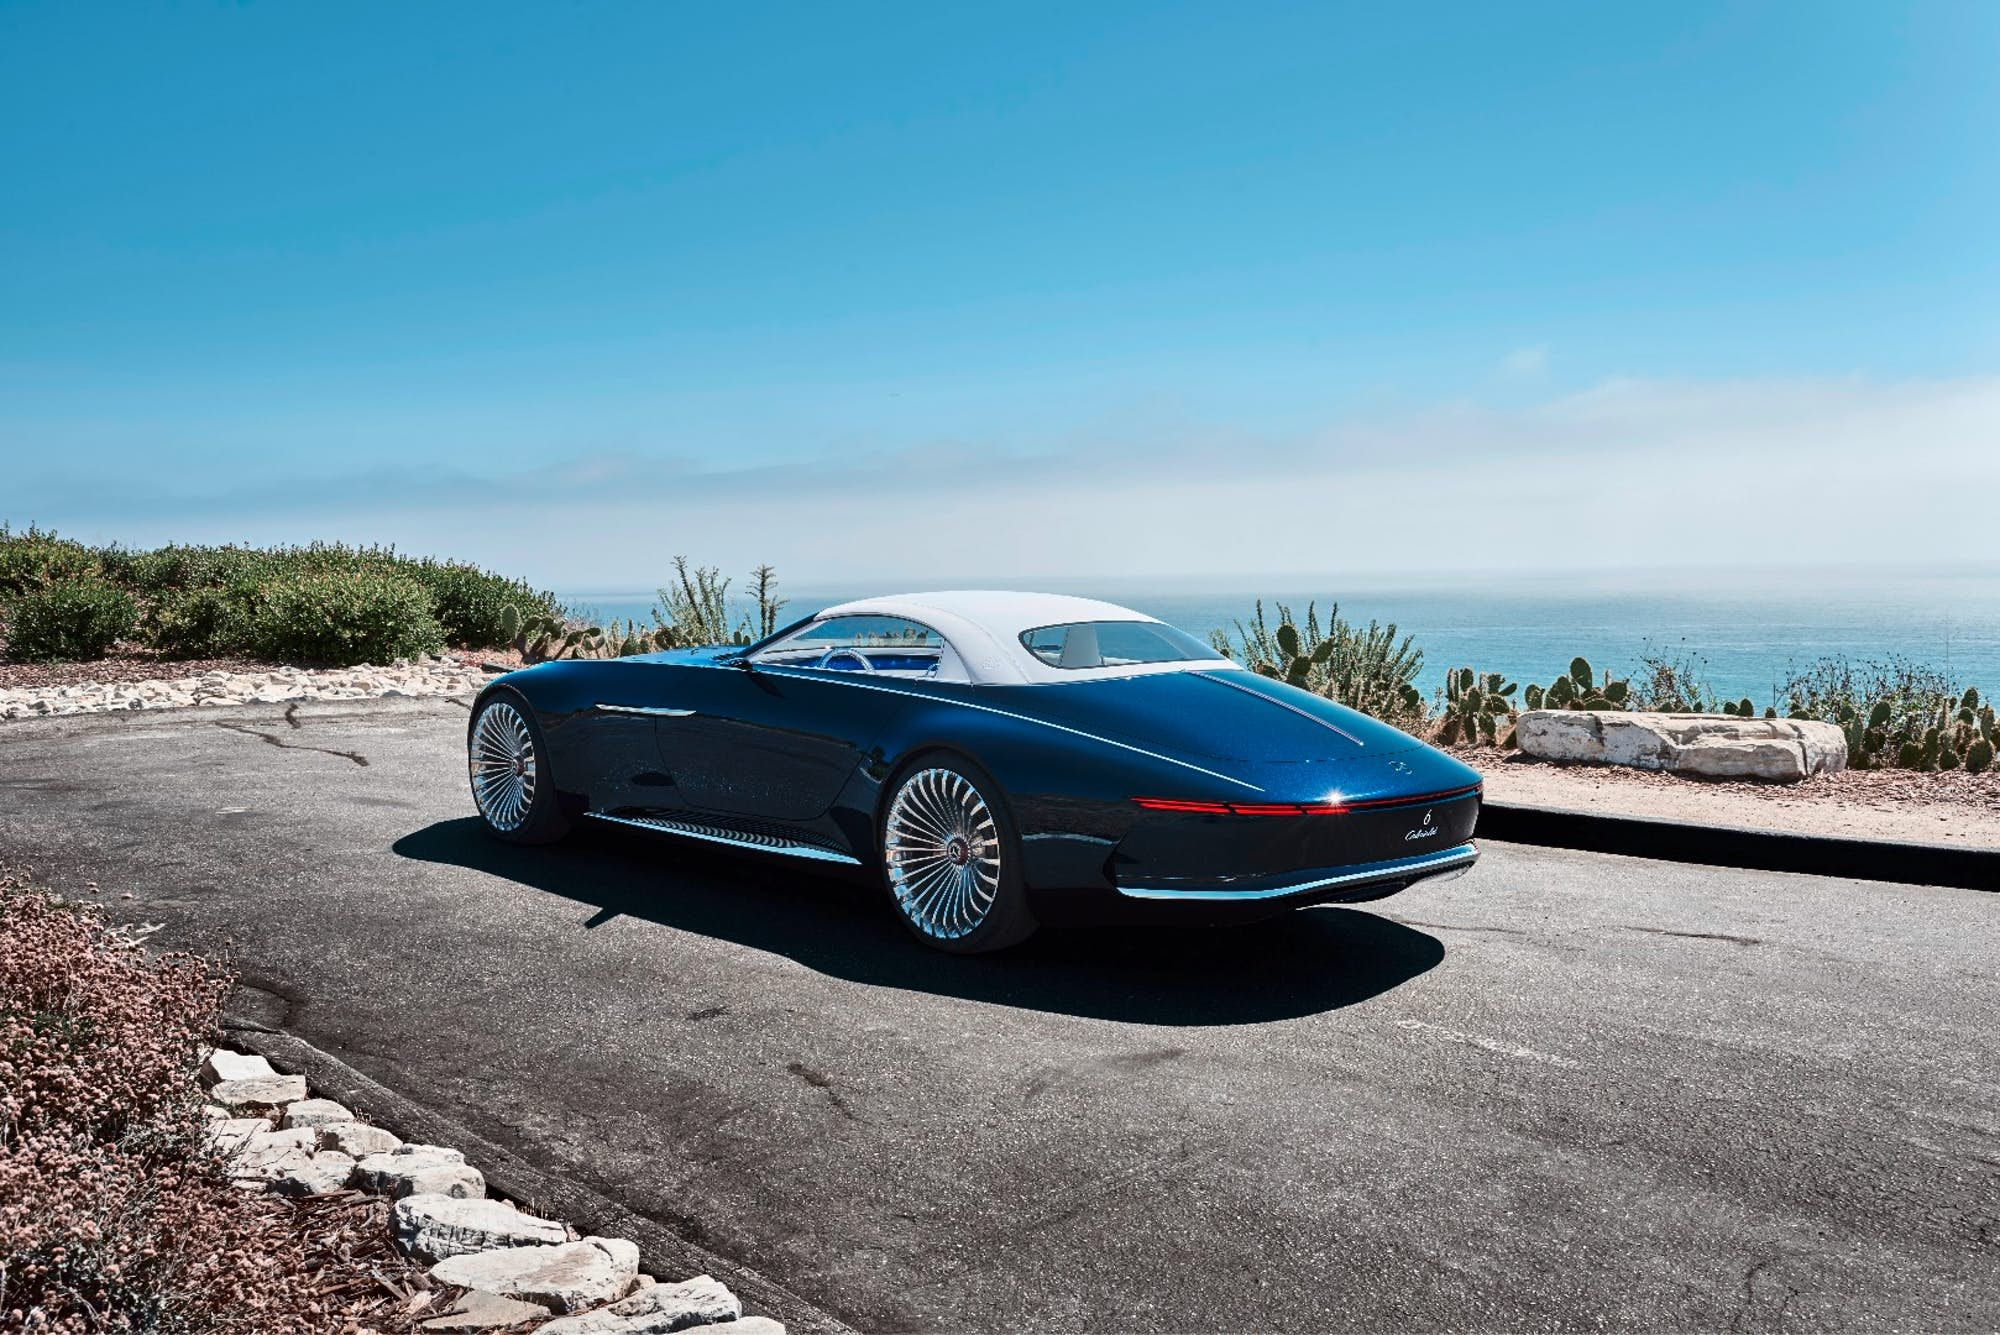 Monumental Vision Mercedes Maybach 6 Cabriolet arrives at Pebble